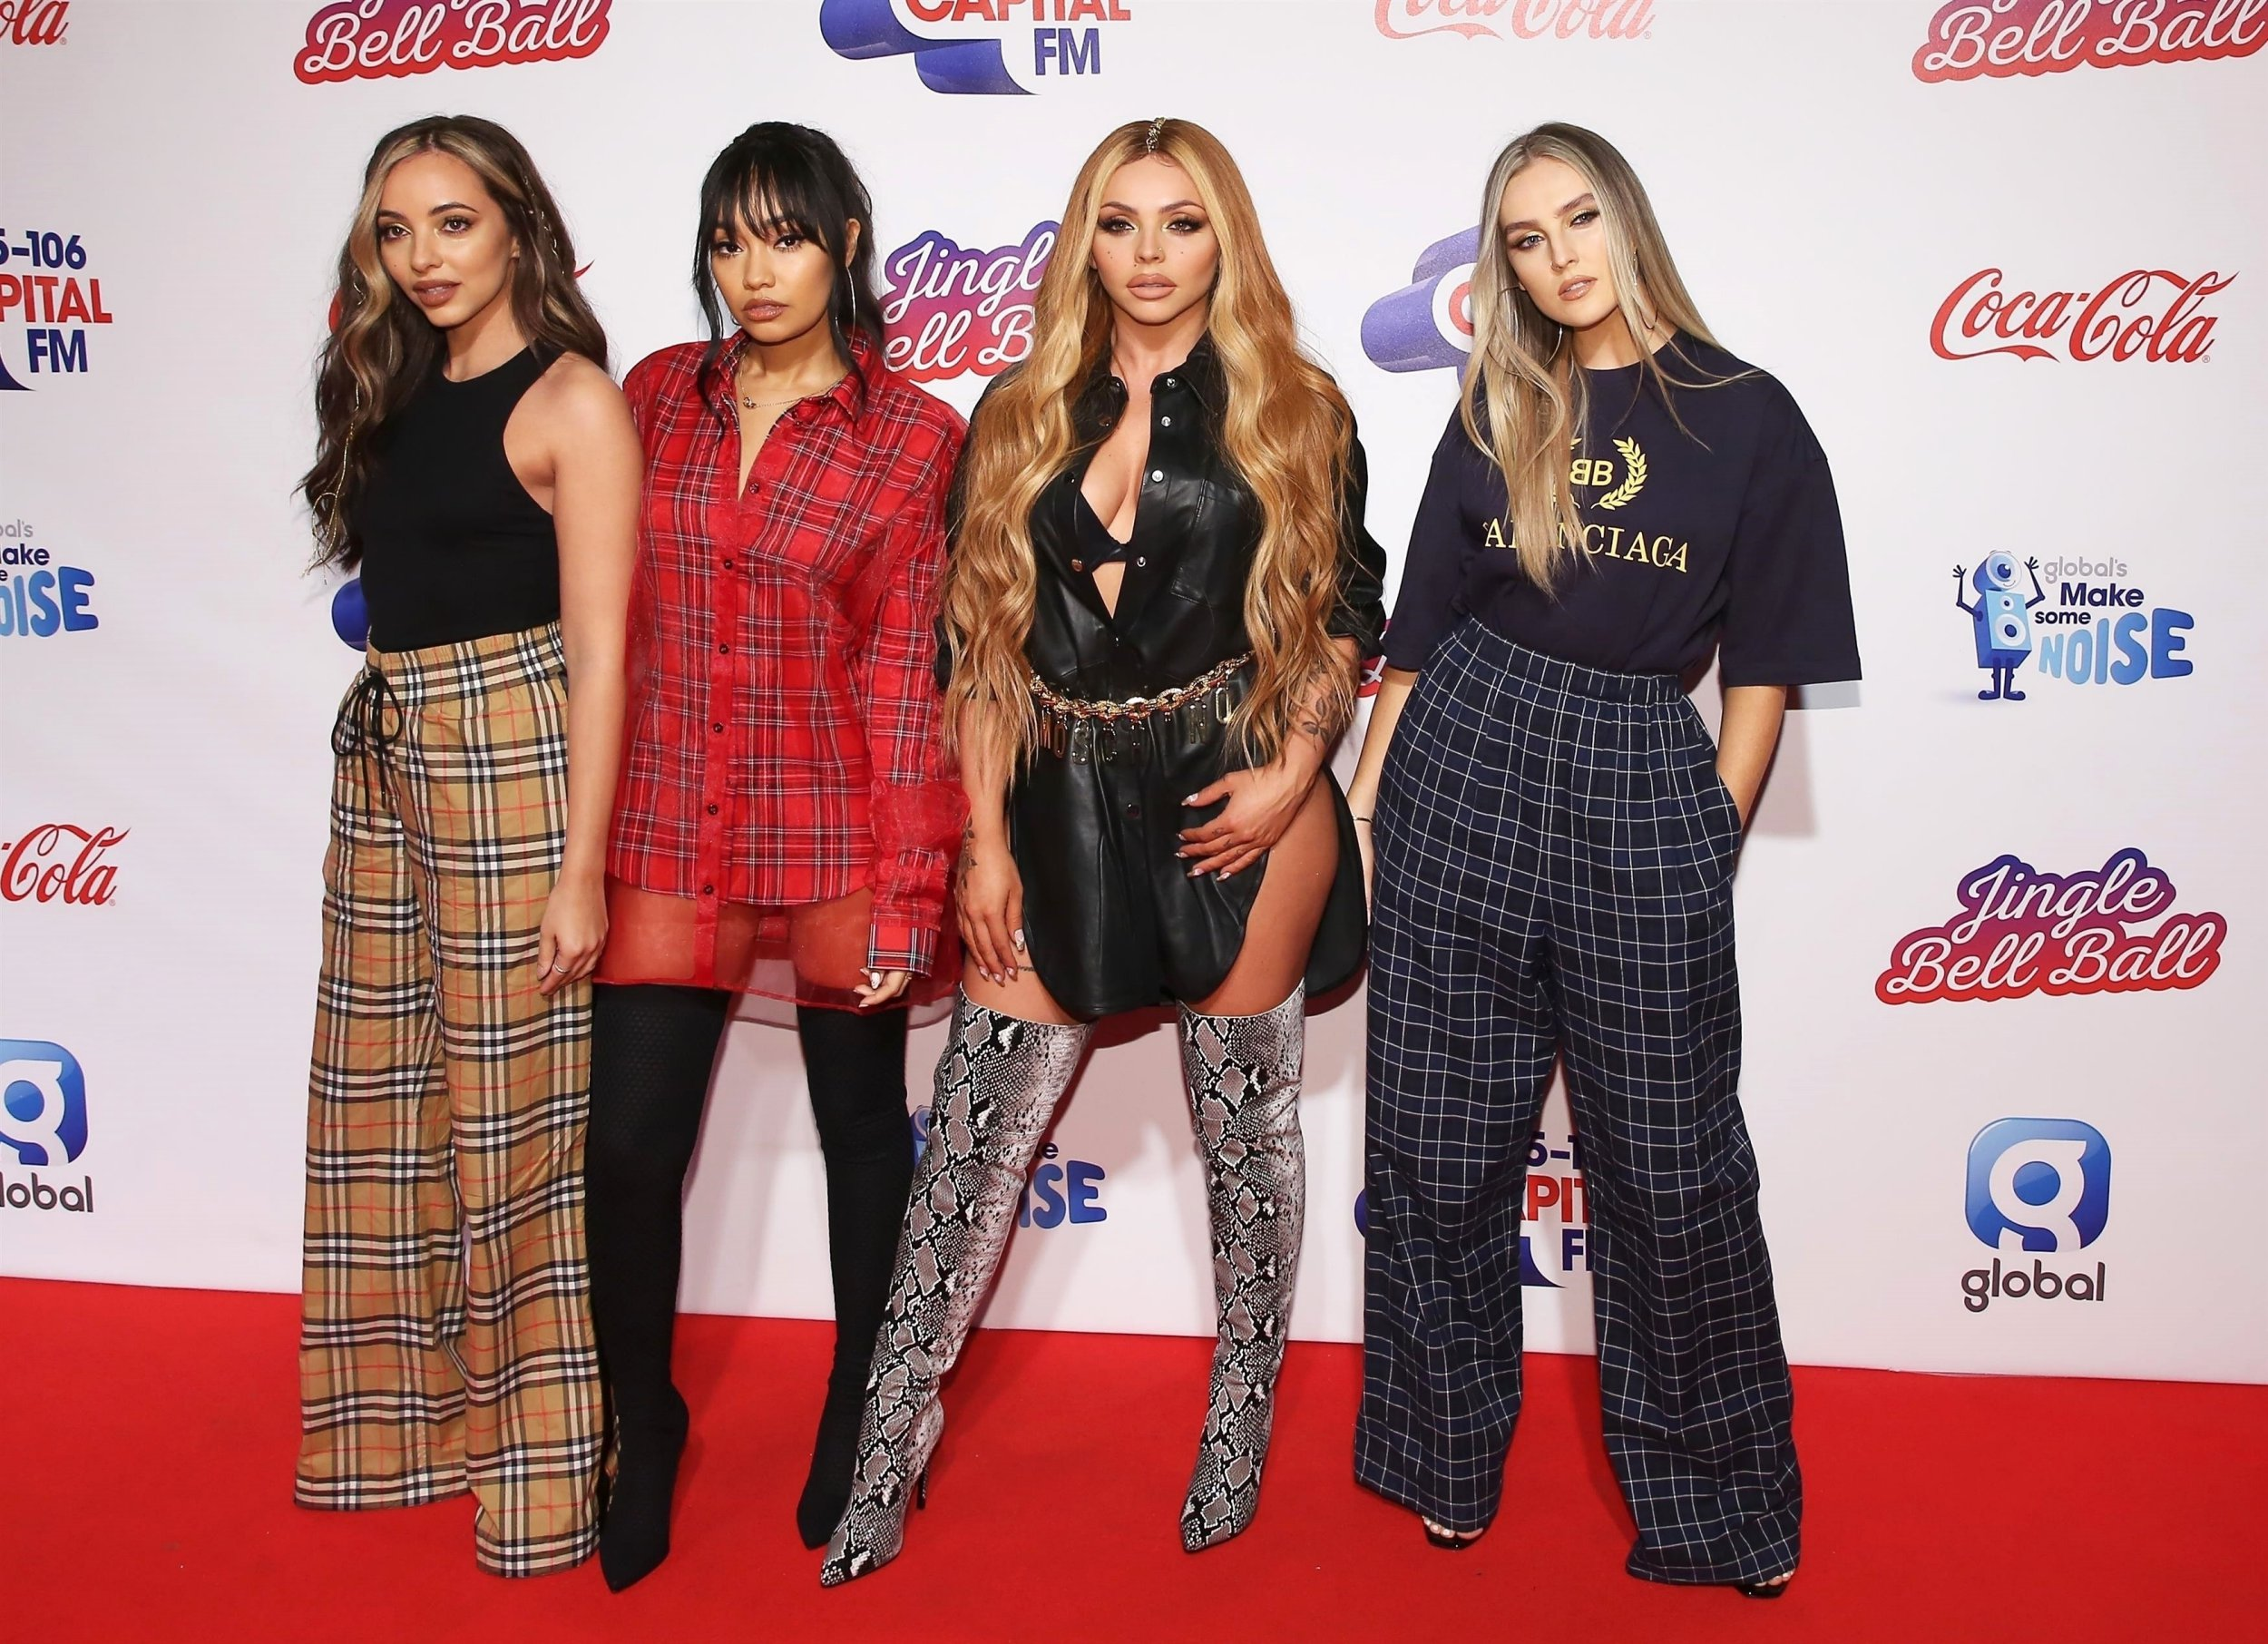 BGUK_1429599 - London, UNITED KINGDOM - Celebrities attend The Capital FM Jingle Bell Ball 2018 - Day Two at the 02 Arena in London Pictured: Jade Thirlwall, Leigh-Anne Pinnock, Jesy Nelson, Perrie Edwards, Little Mix BACKGRID UK 9 DECEMBER 2018 BYLINE MUST READ: WLHN / BACKGRID UK: +44 208 344 2007 / uksales@backgrid.com USA: +1 310 798 9111 / usasales@backgrid.com *UK Clients - Pictures Containing Children Please Pixelate Face Prior To Publication*